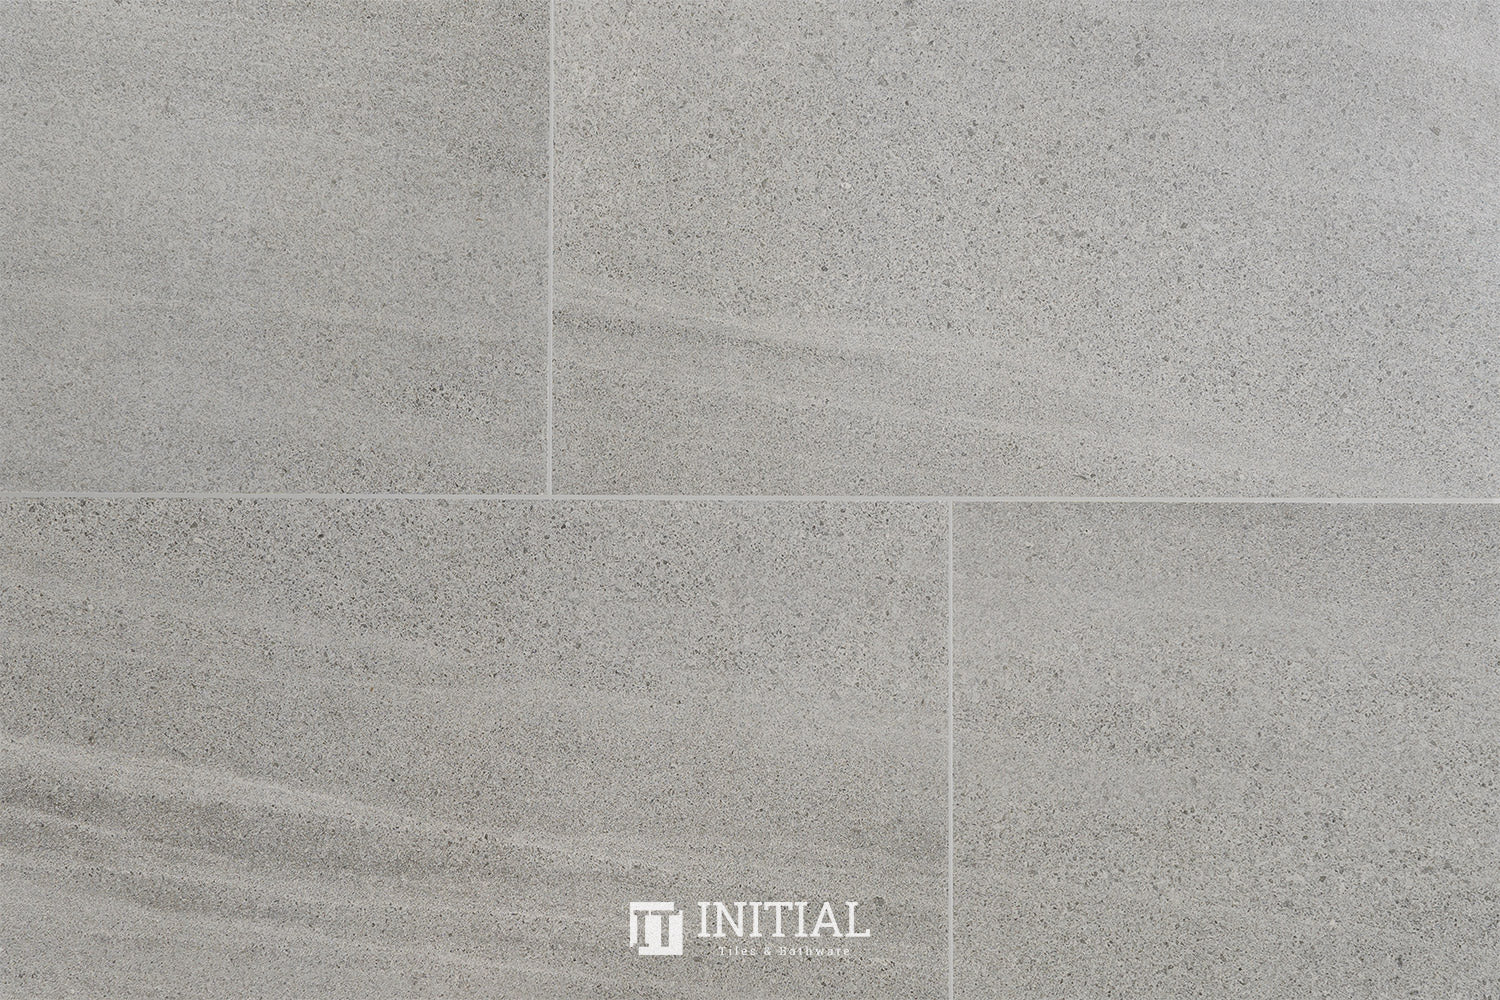 Marble Look Tile New Delhi Light Grey Matt 300X600